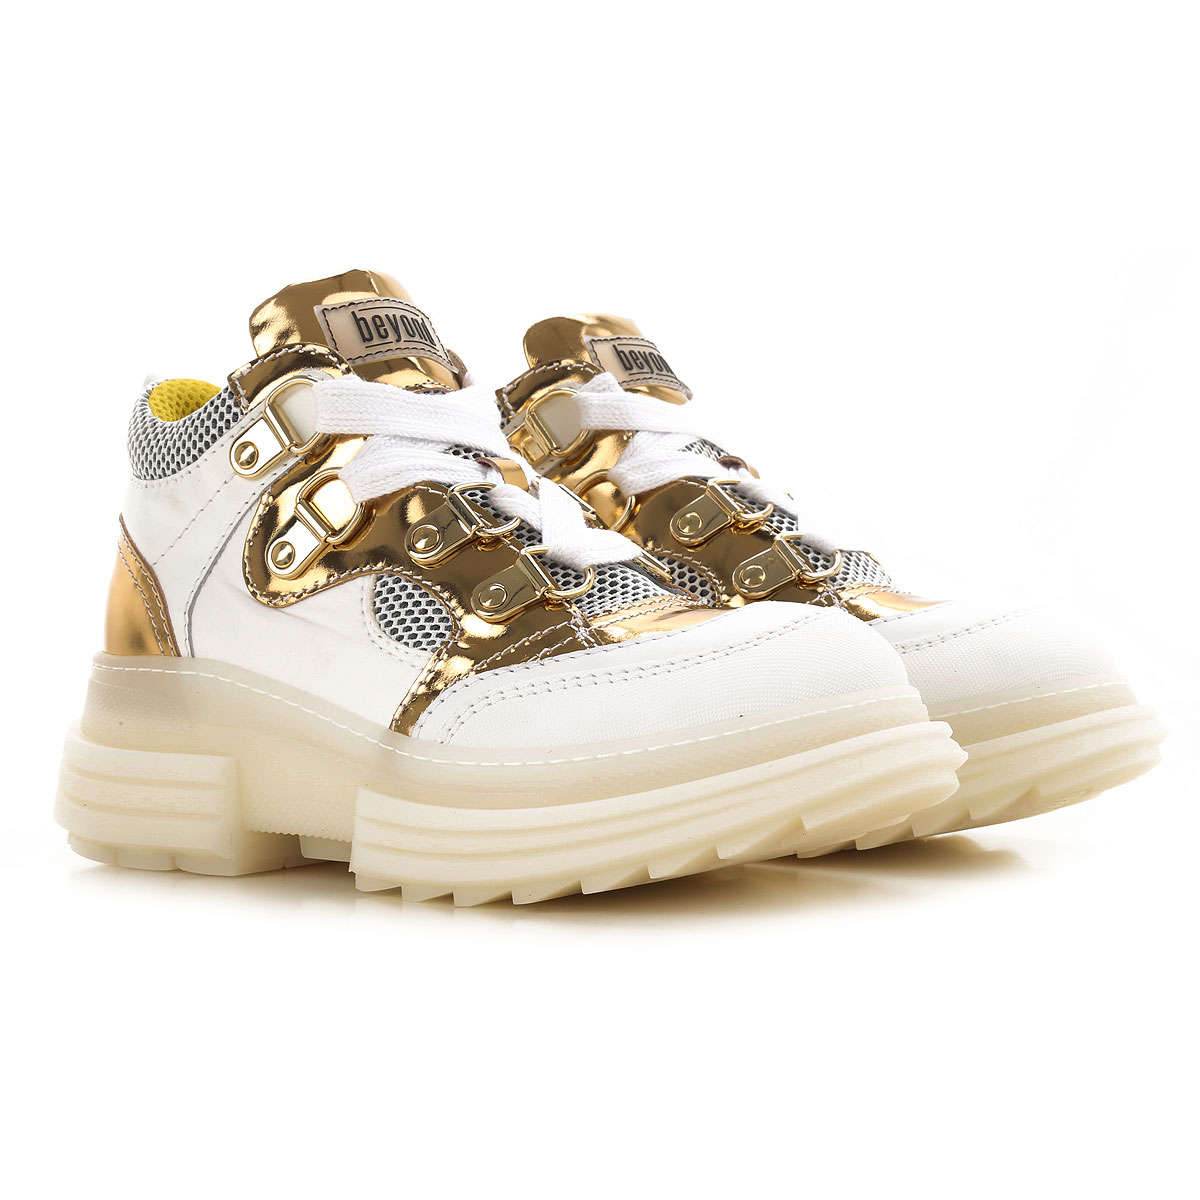 Beyond Sneakers for Women, White, Leather, 2019, 10 6 7 8 9